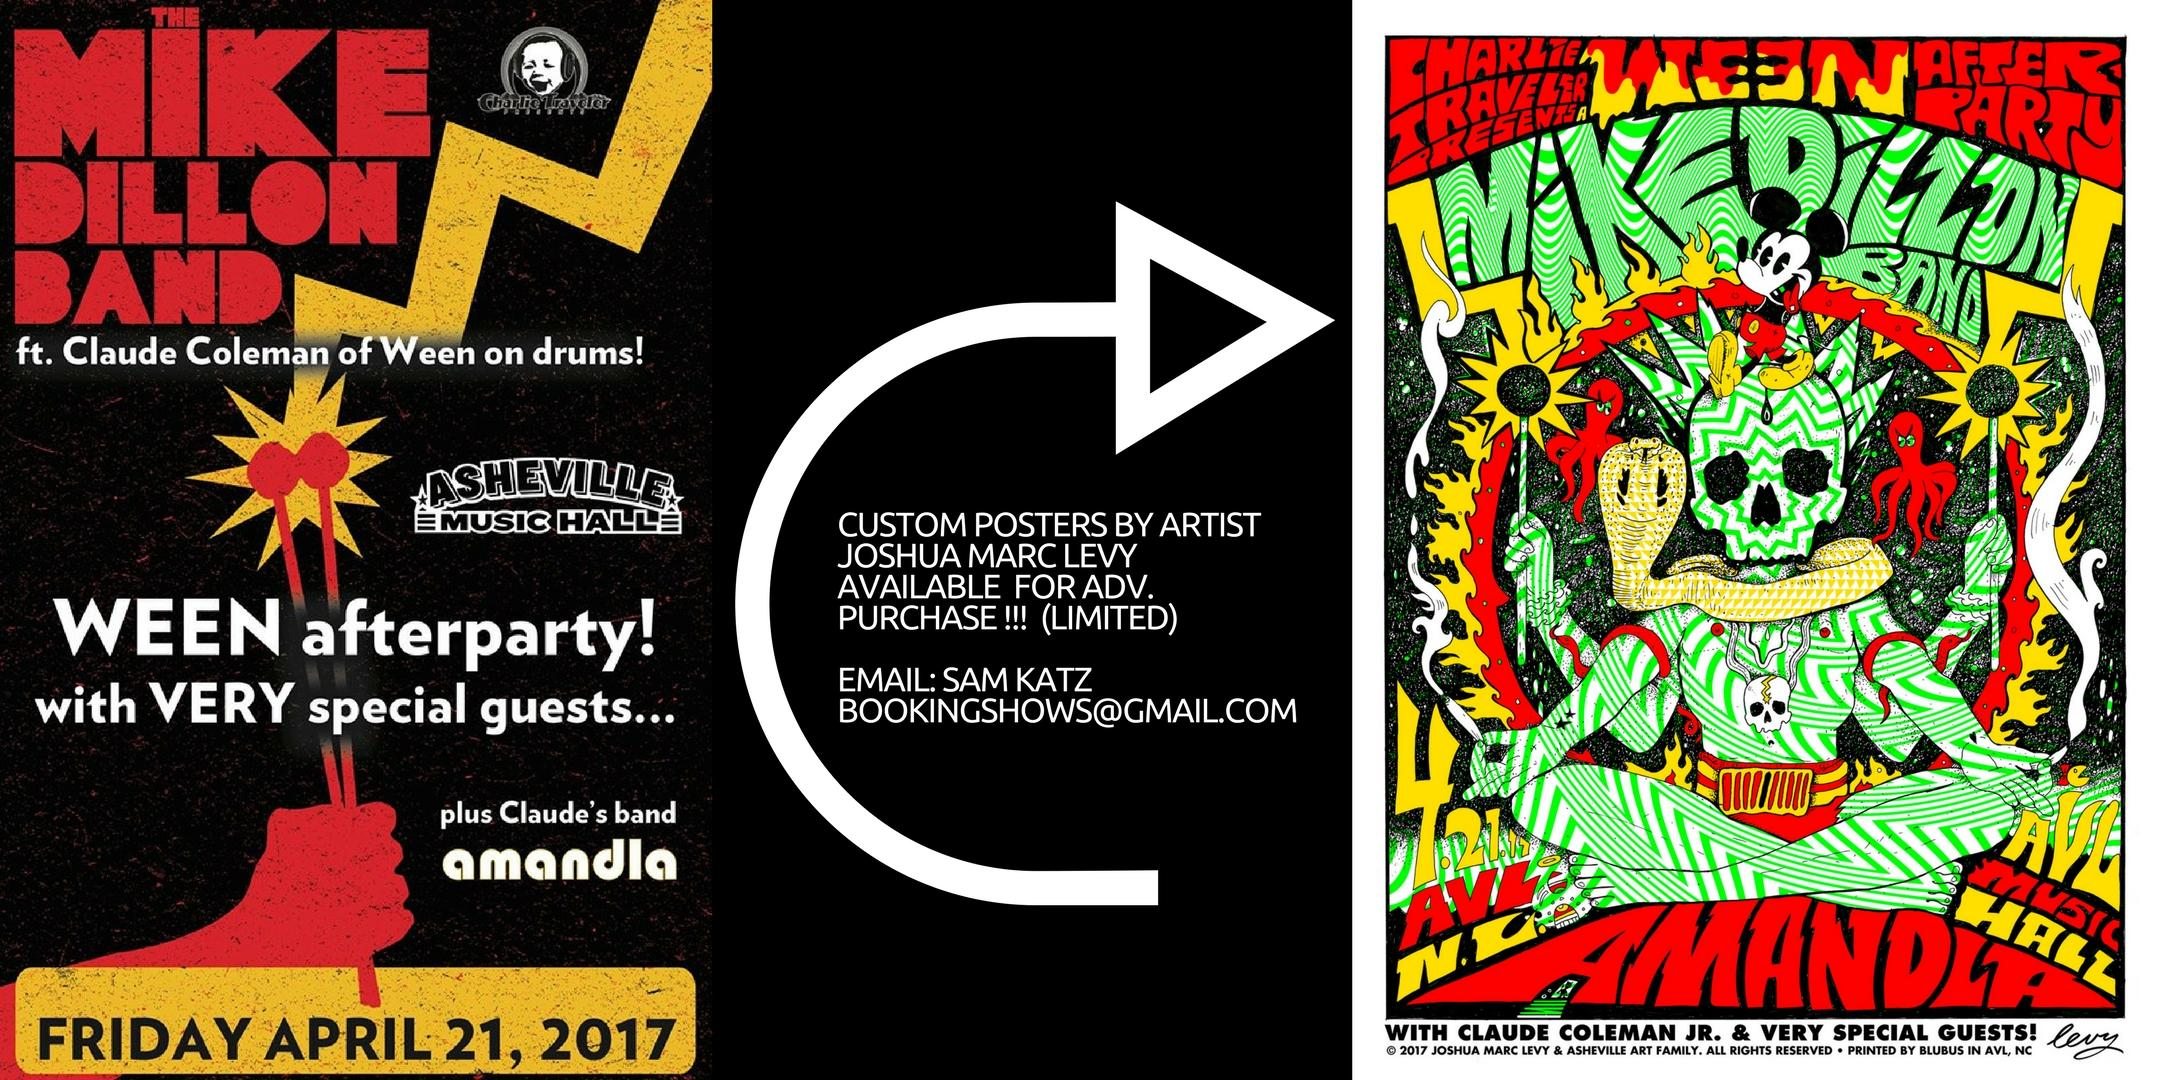 CHARLIE TRAVELER PRESENTS: a Ween Afterparty w/ Mike Dillon Band ft. Claude Coleman Jr. (of Ween) on drums w/ amandla + VERY special guests